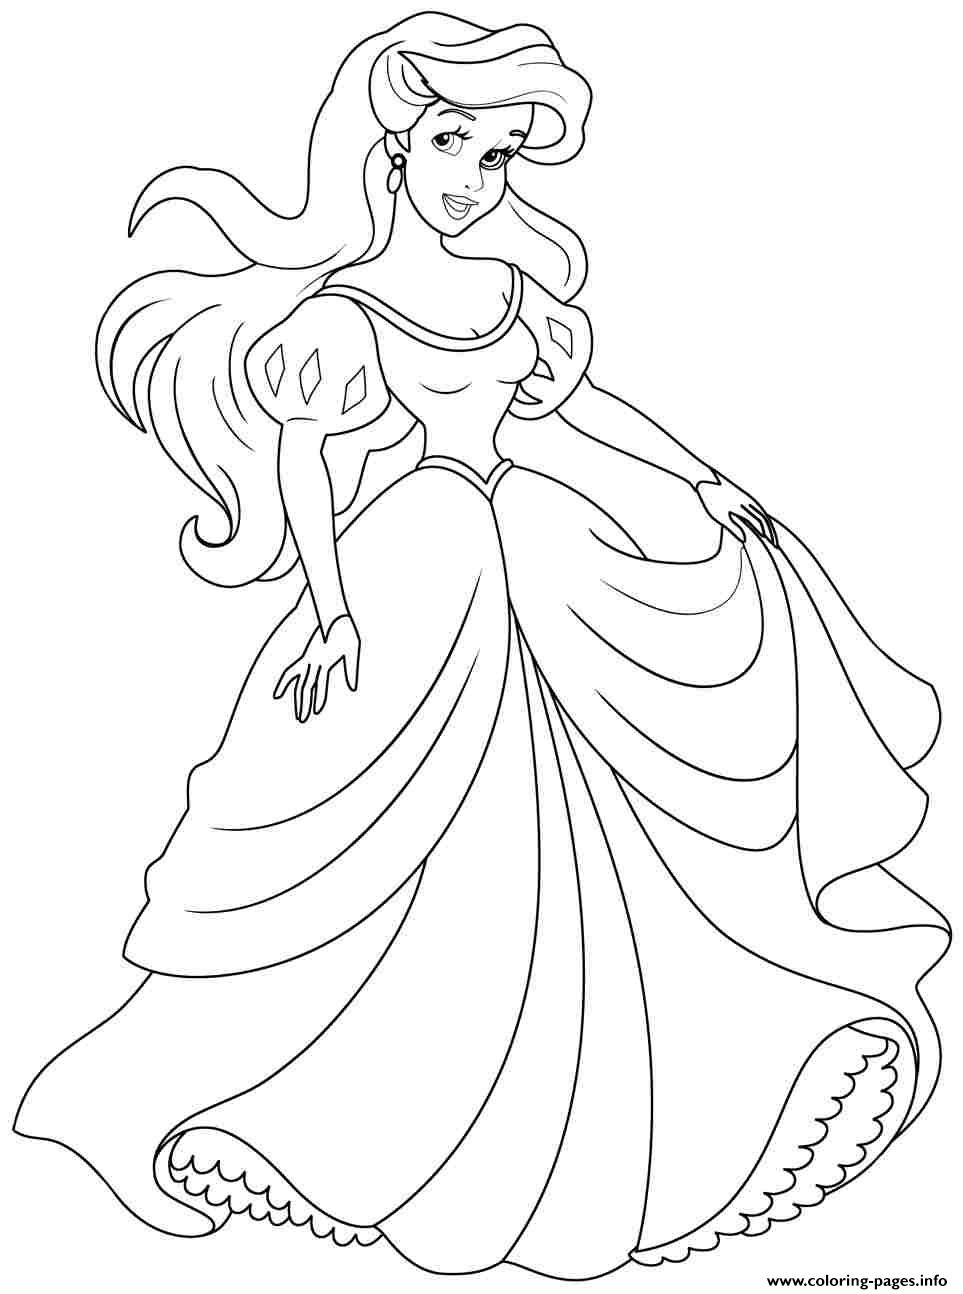 princess ariel human coloring pages - Drawing And Colouring Pictures For Kids